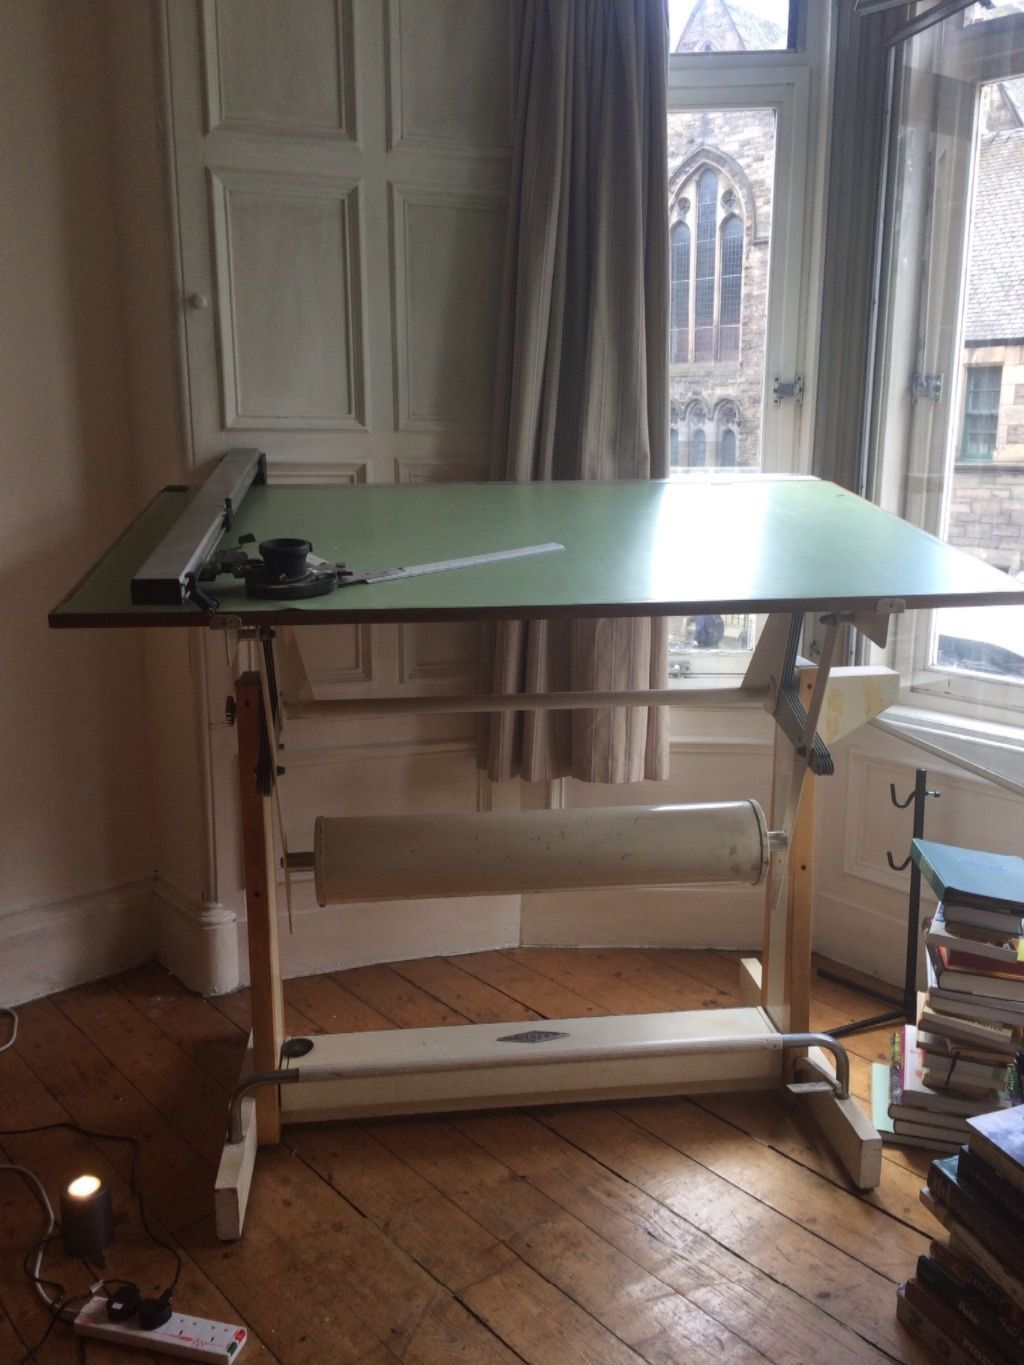 Bieffe Drawing Drafting Table Size Aa0 Used Good Condition Drafting Table Table Sizes Table